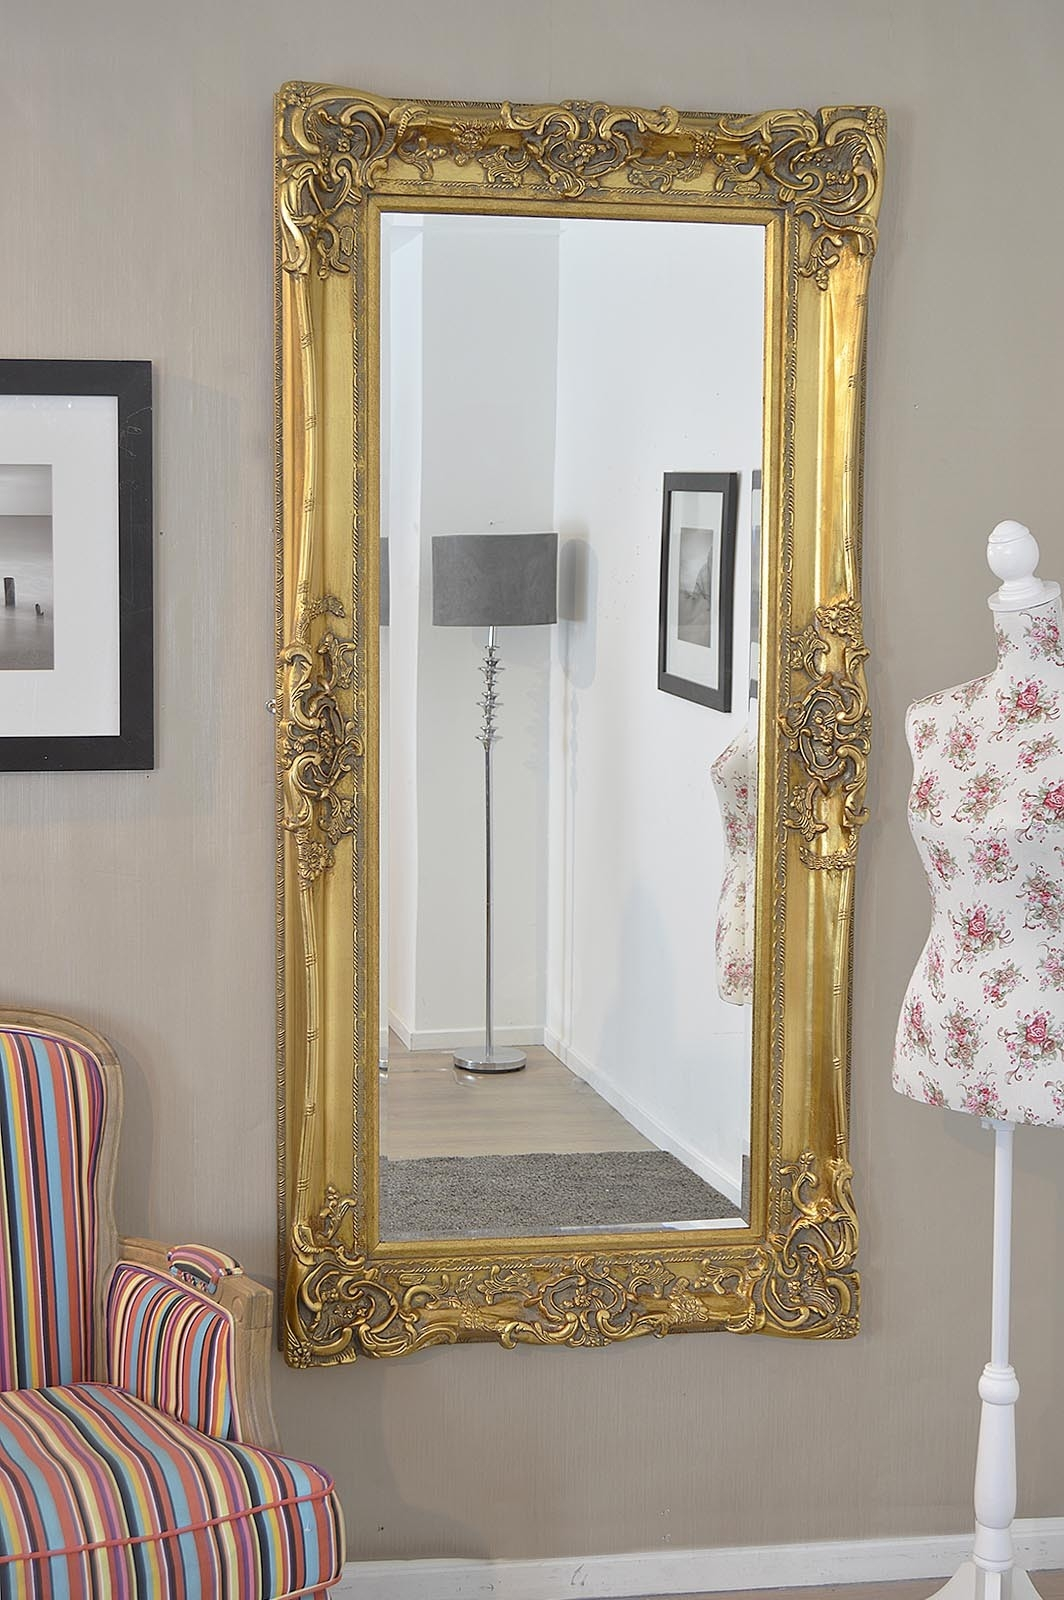 Frame Gold Antique Shab Chic Ornate Wall Mirror 6ft X 3ft 183 X Intended For Shabby Chic Gold Mirror (Image 6 of 15)